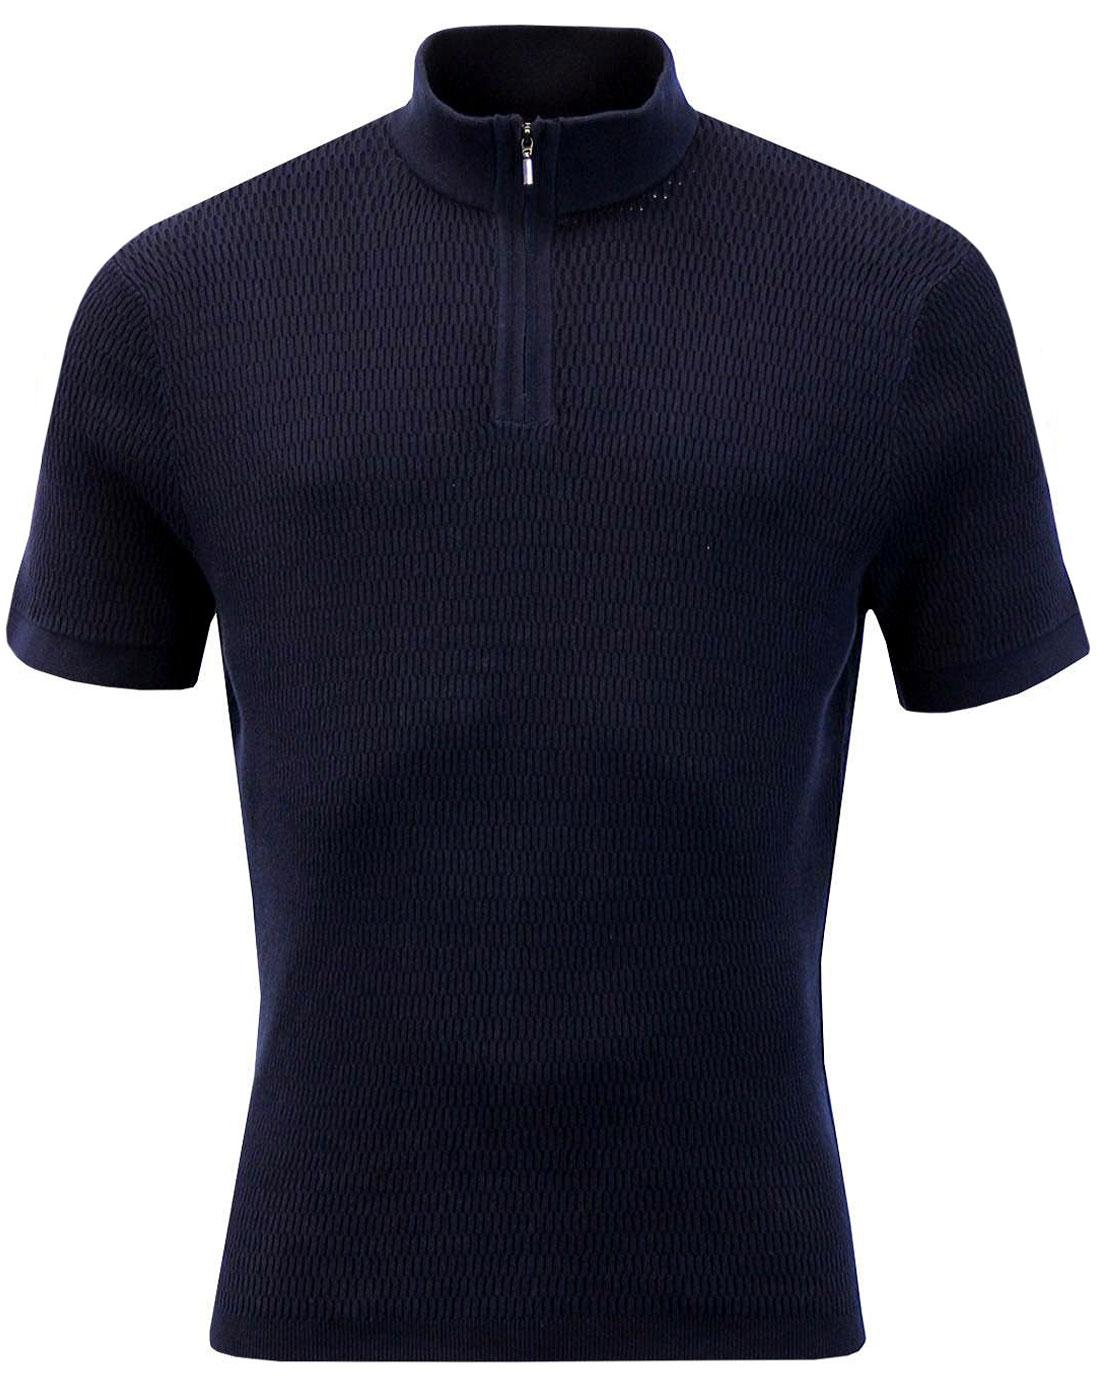 BEN SHERMAN Retro 60s Mod Ribbed Knit Cycling Top